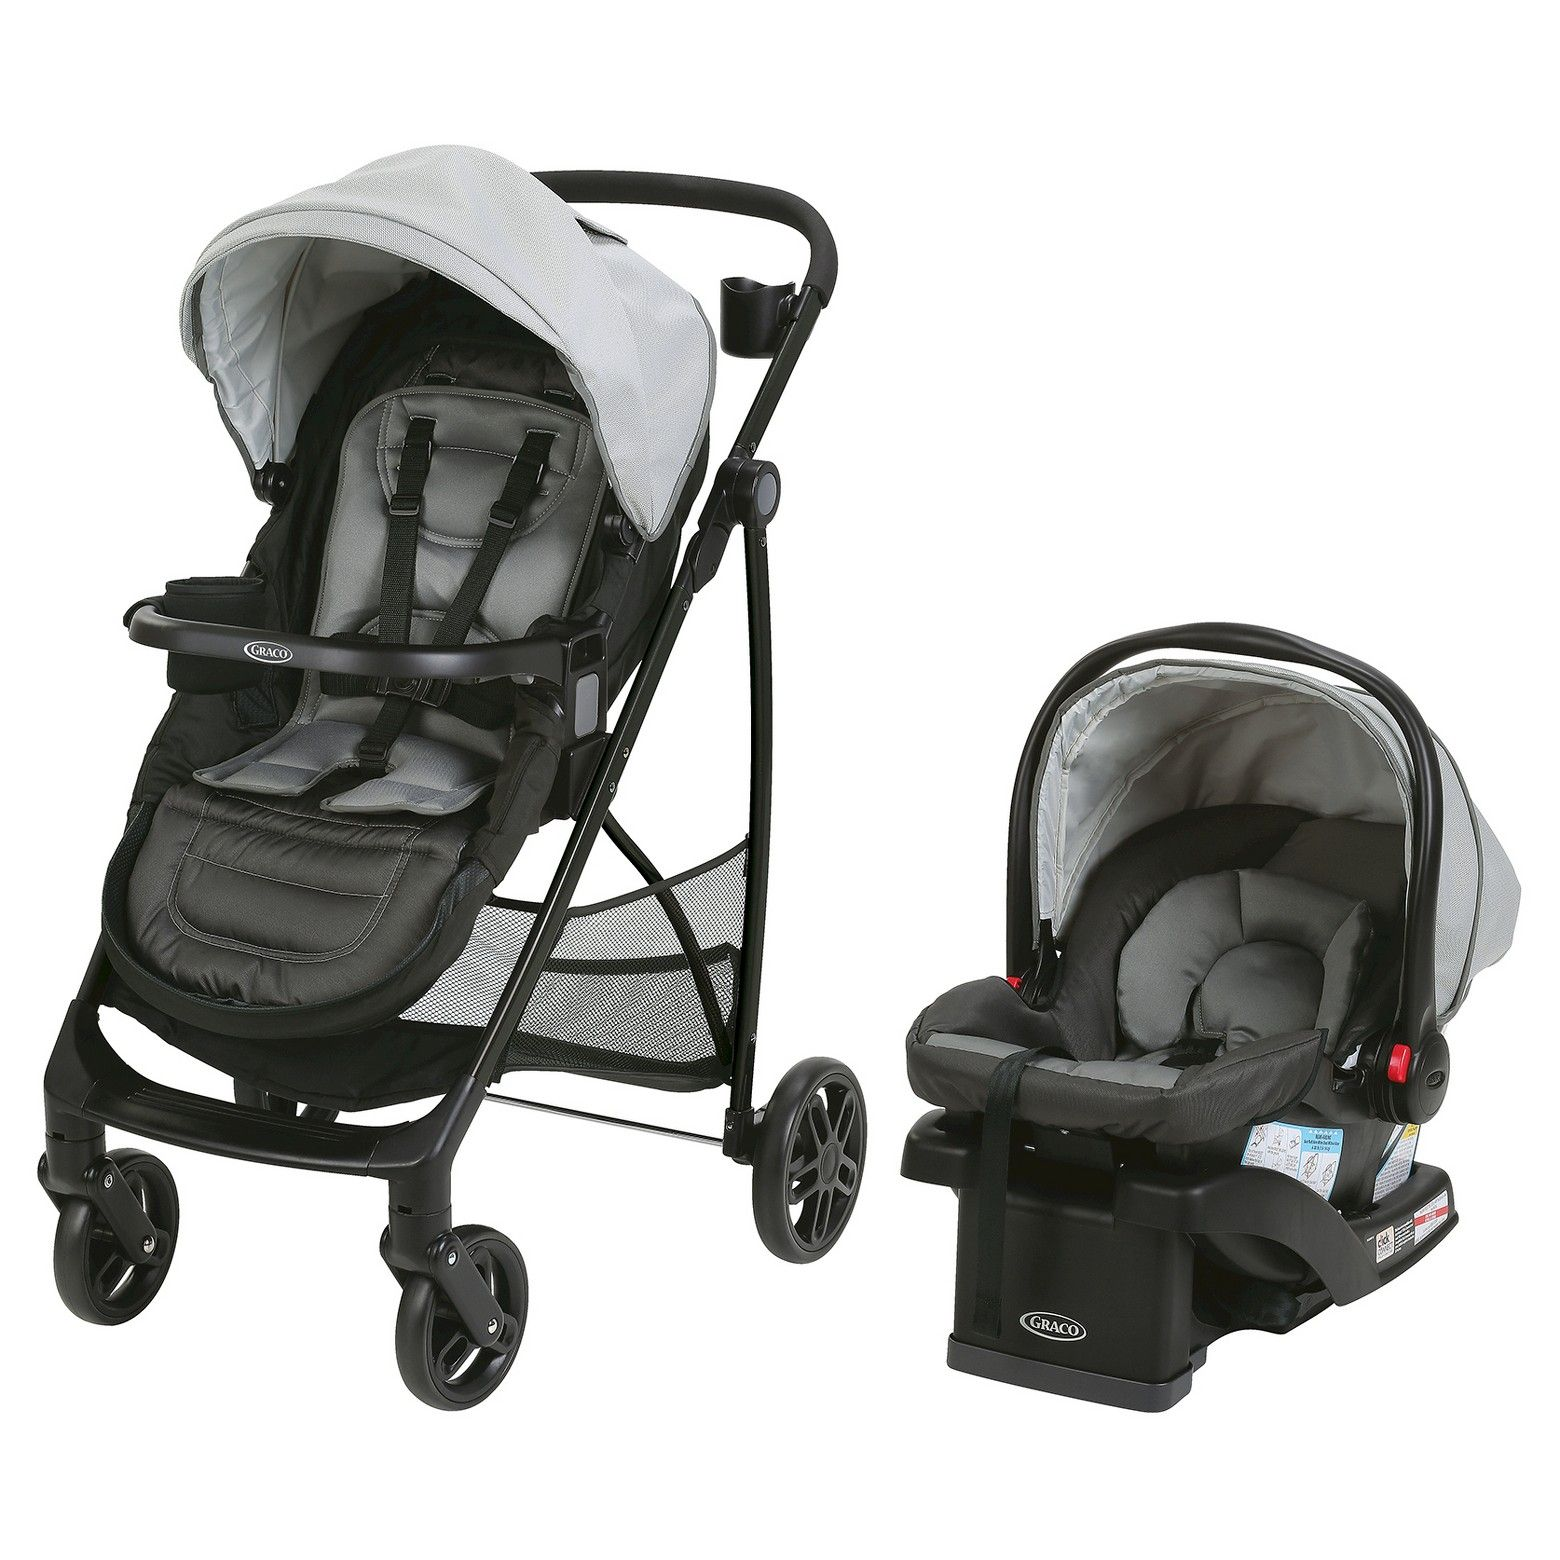 Pin by Katie Cleaver on baby things Travel system